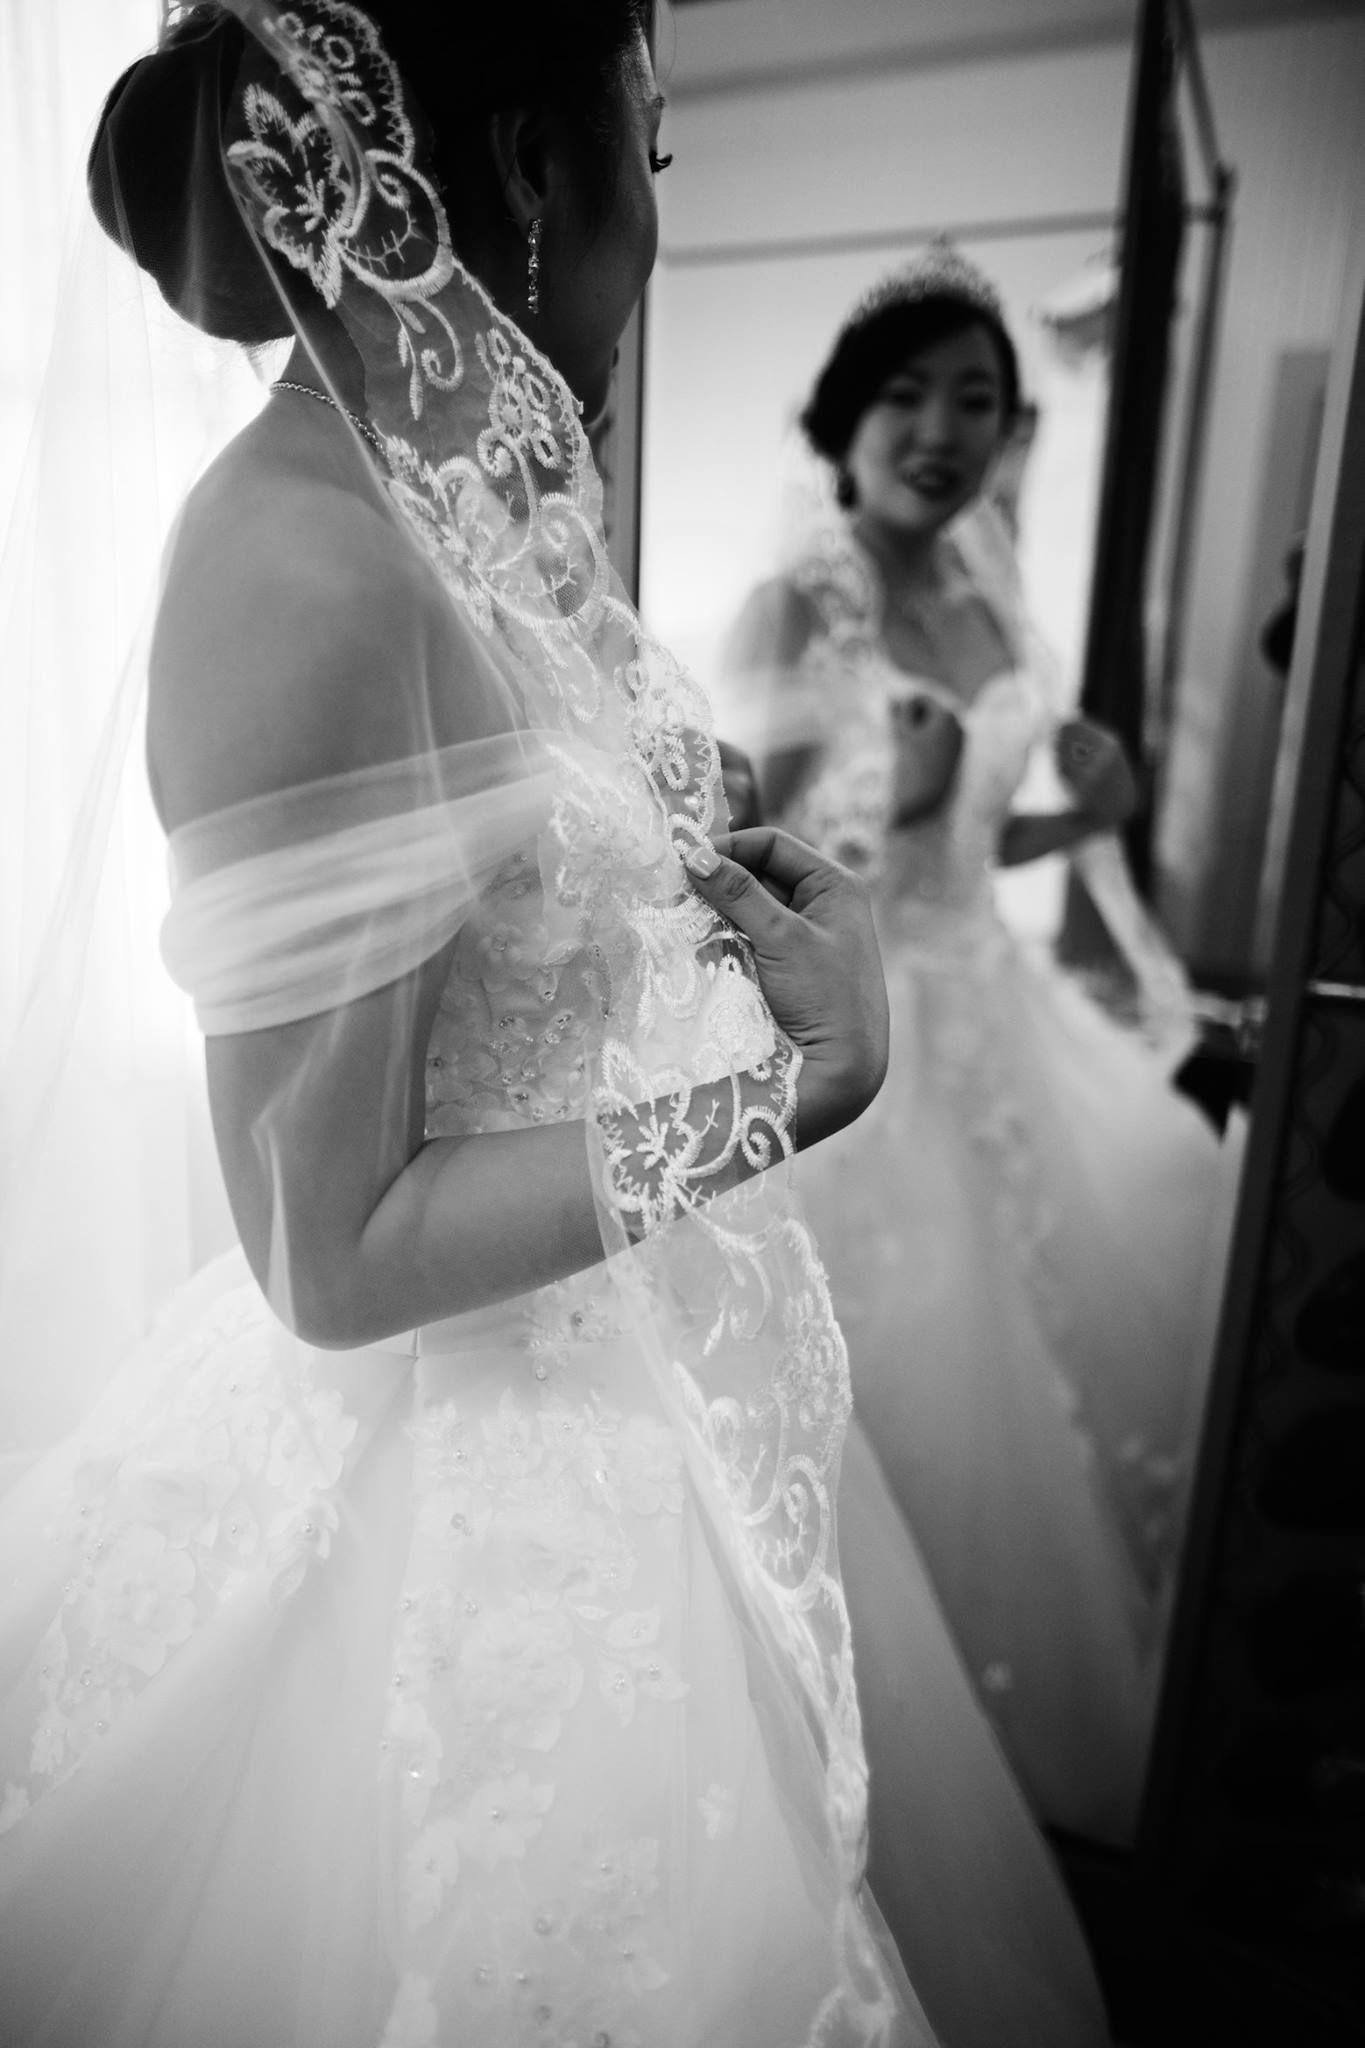 Lace wedding gown and bridal veil anna kim photography wedding